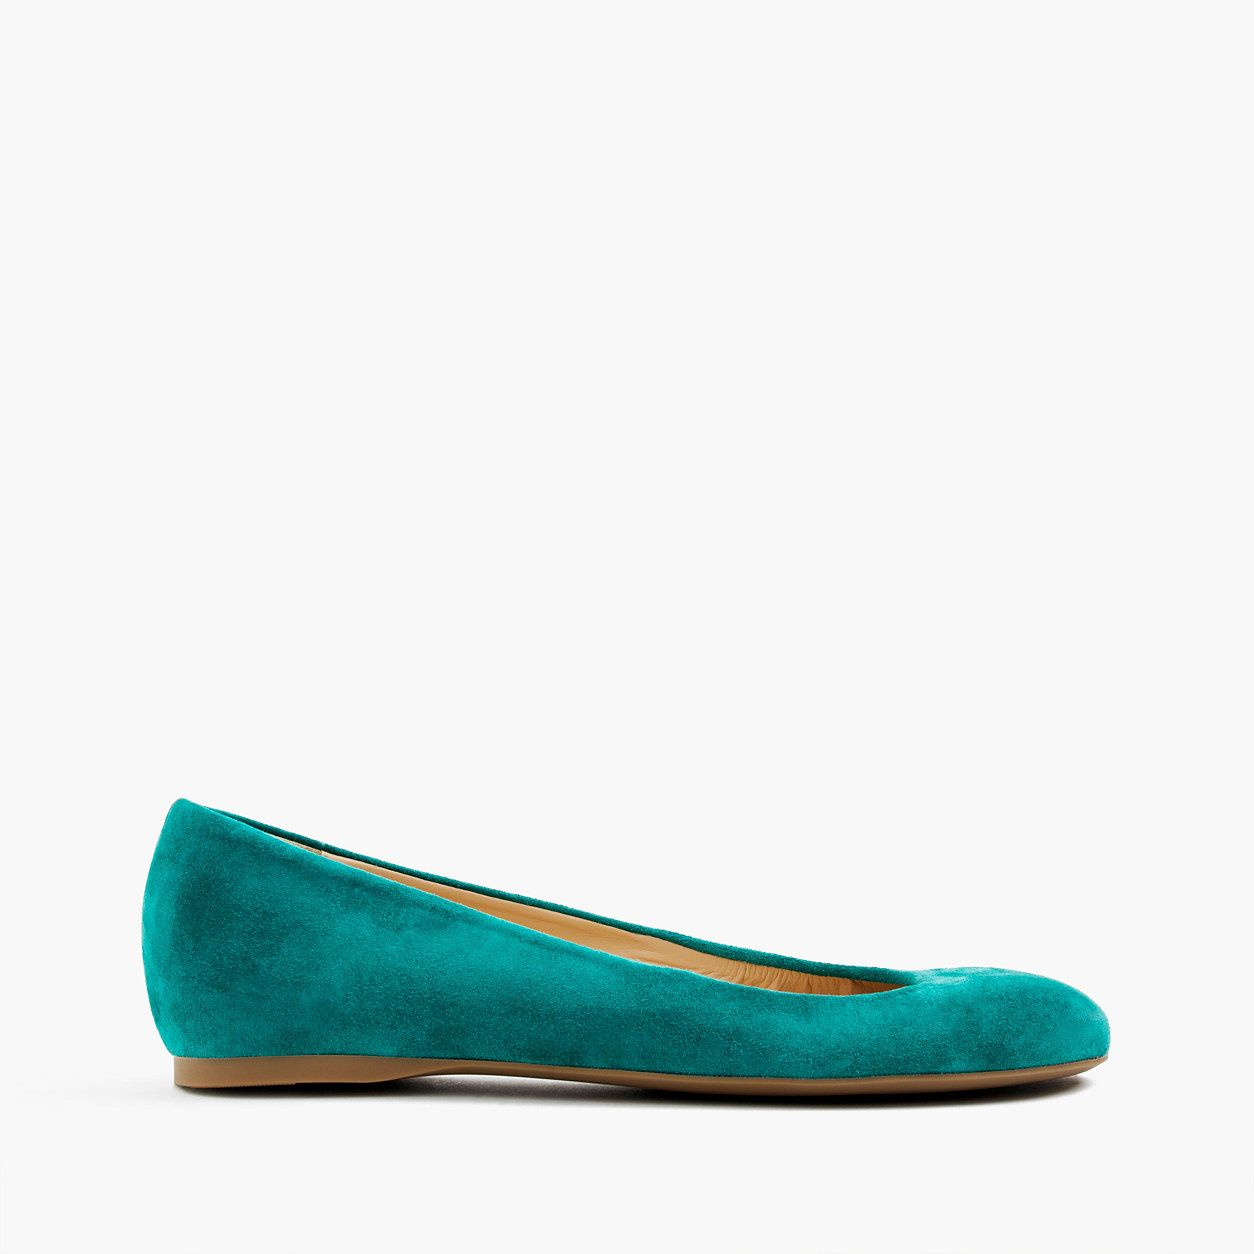 81b81fac809c J.Crew Womens Cece Italian-Made Ballet Flats In Suede (Size 5 M ...